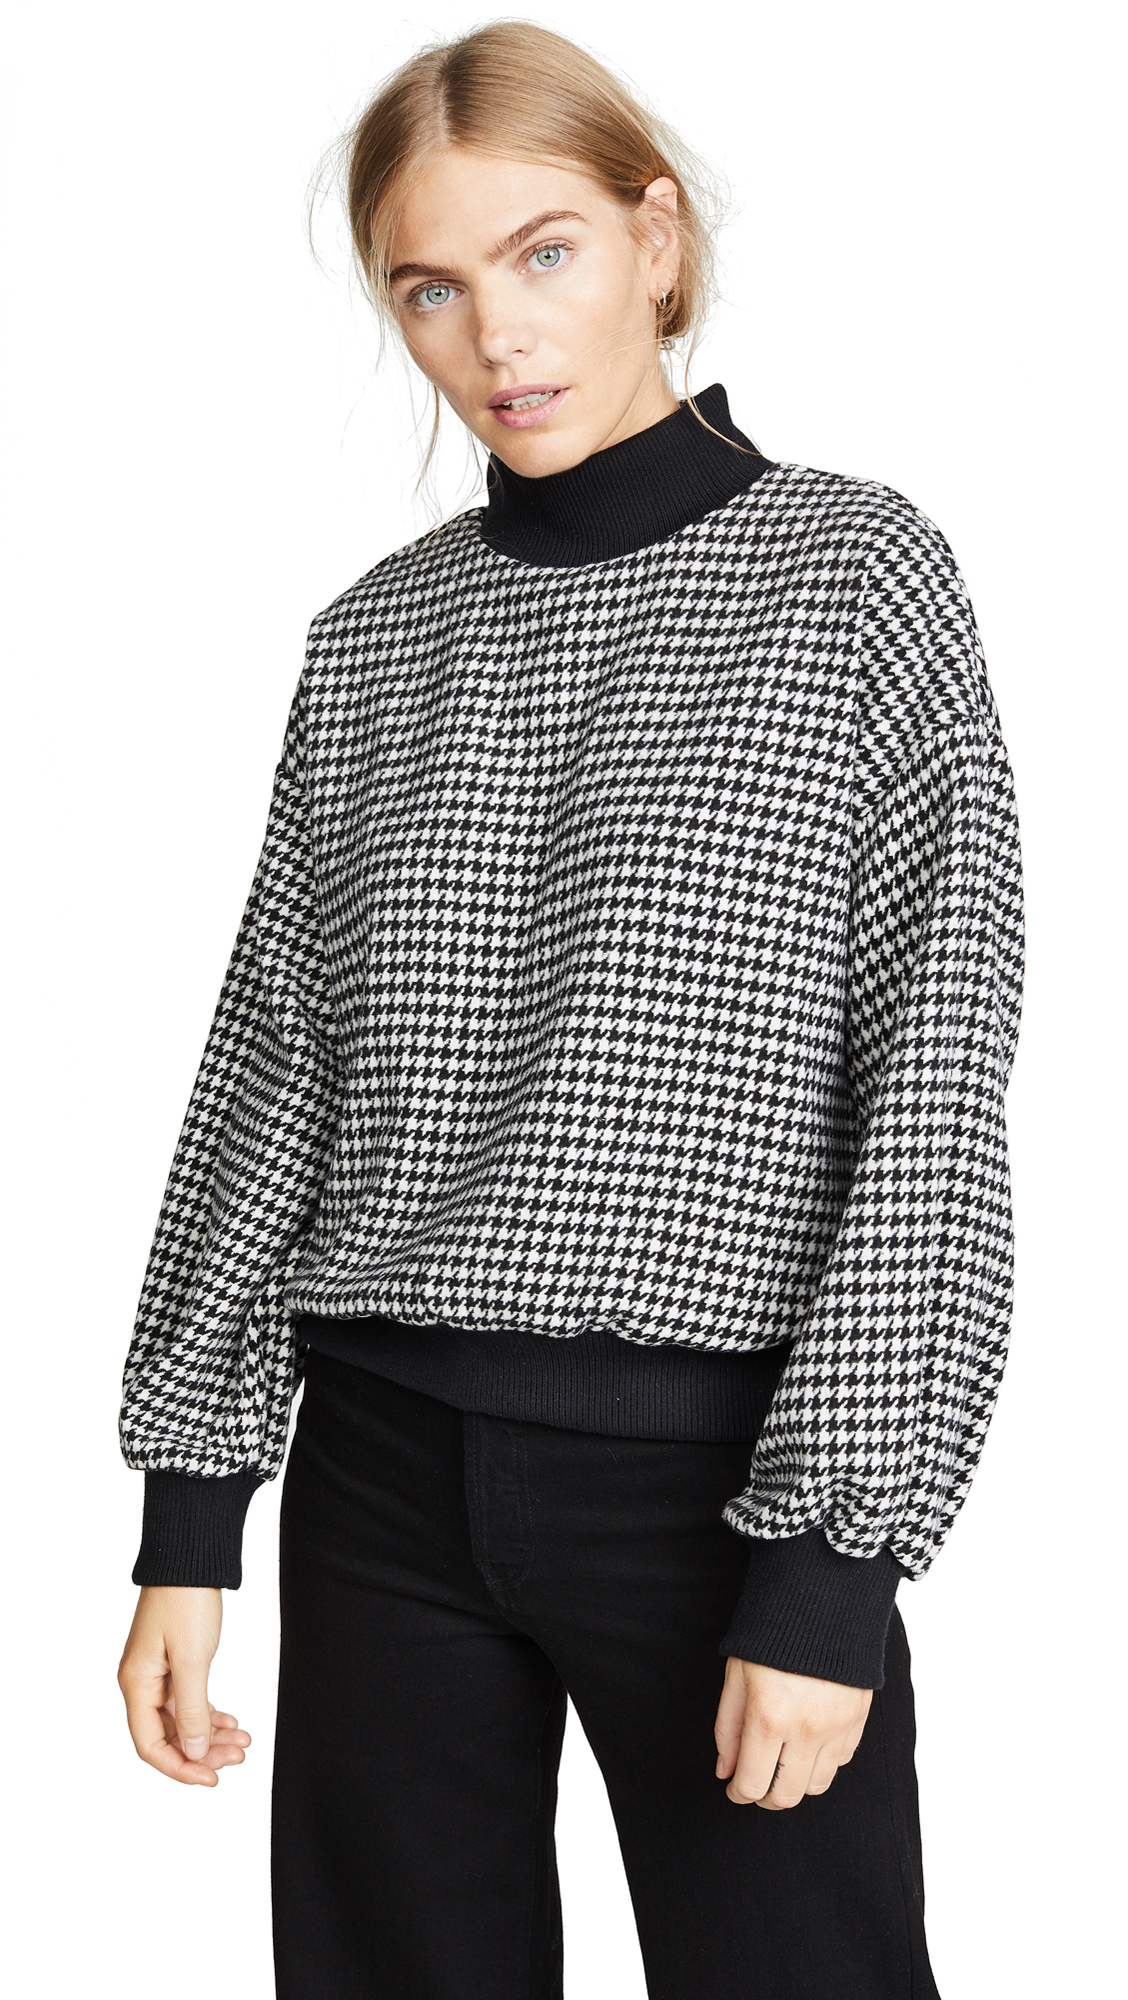 JOA Houndstooth Sweater in Black/White